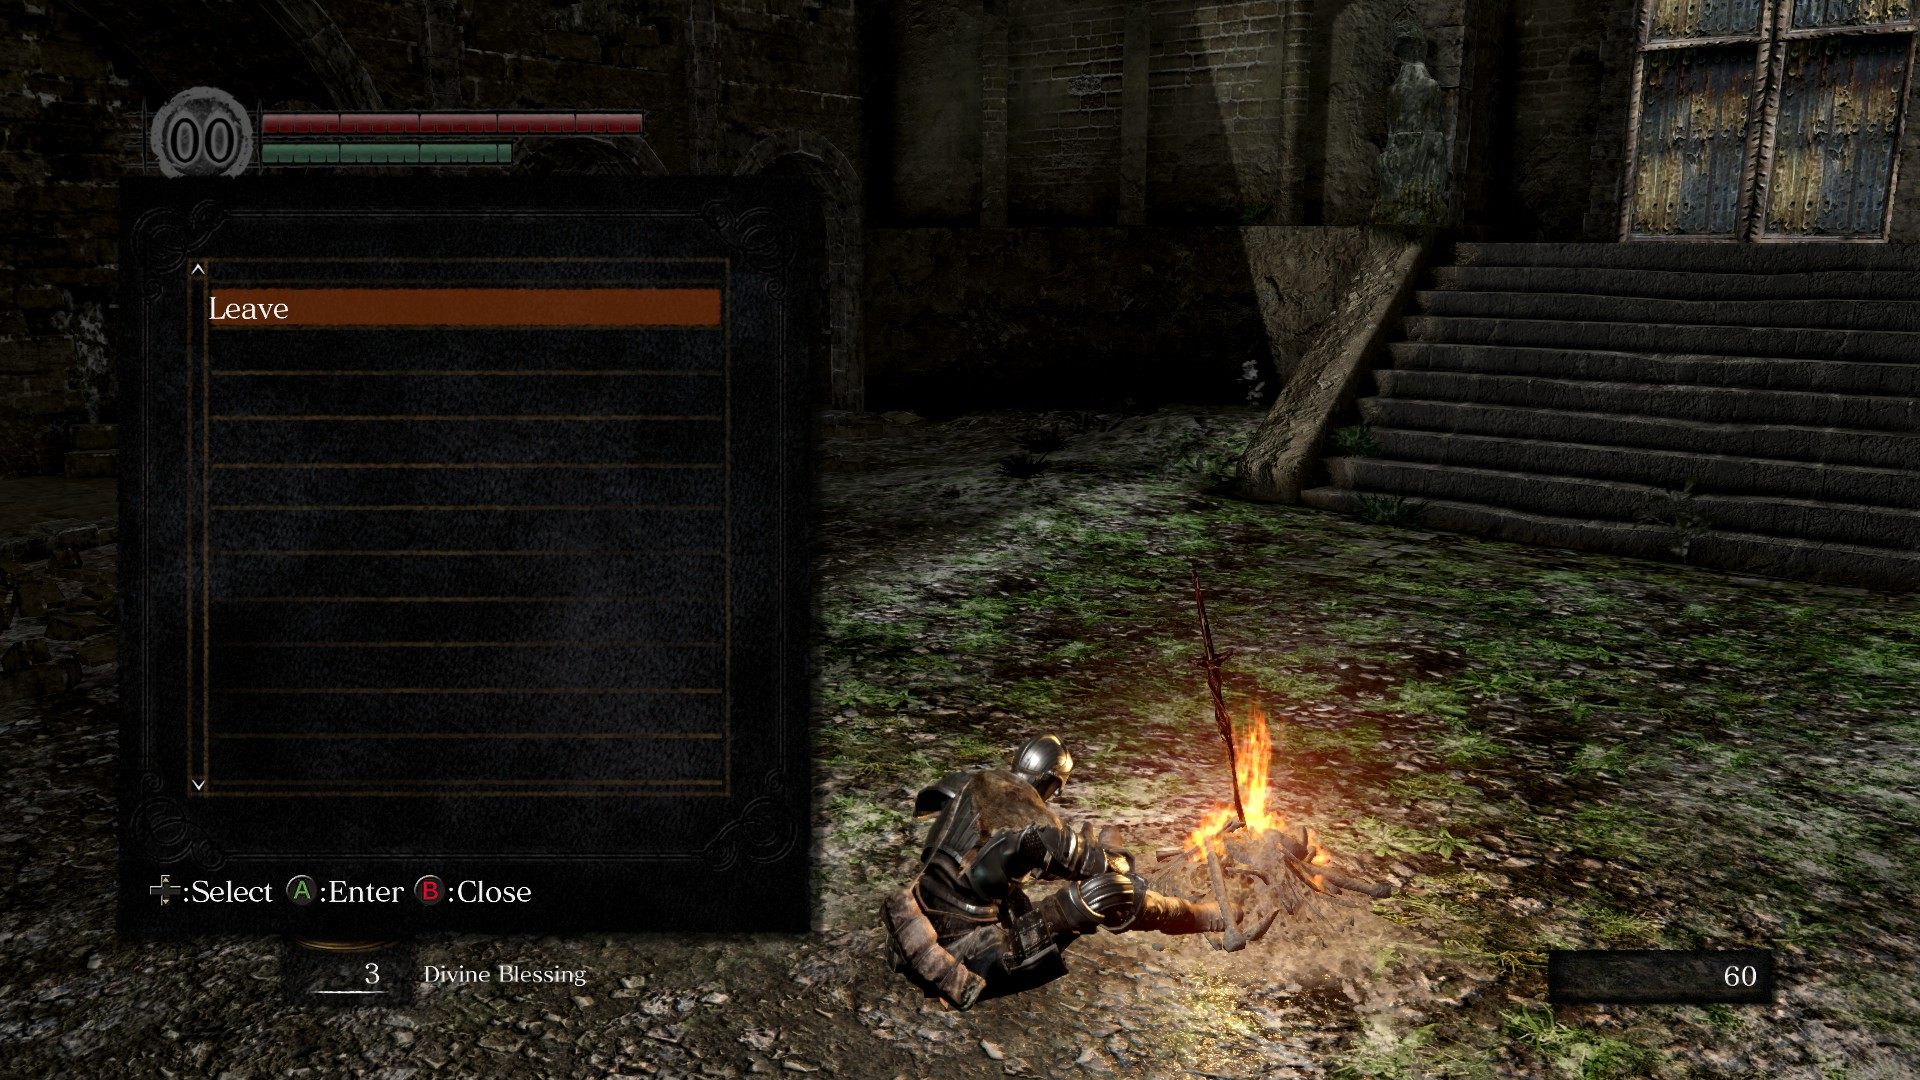 Dark Souls Save Guide - Bonfire Locations, How to Save in